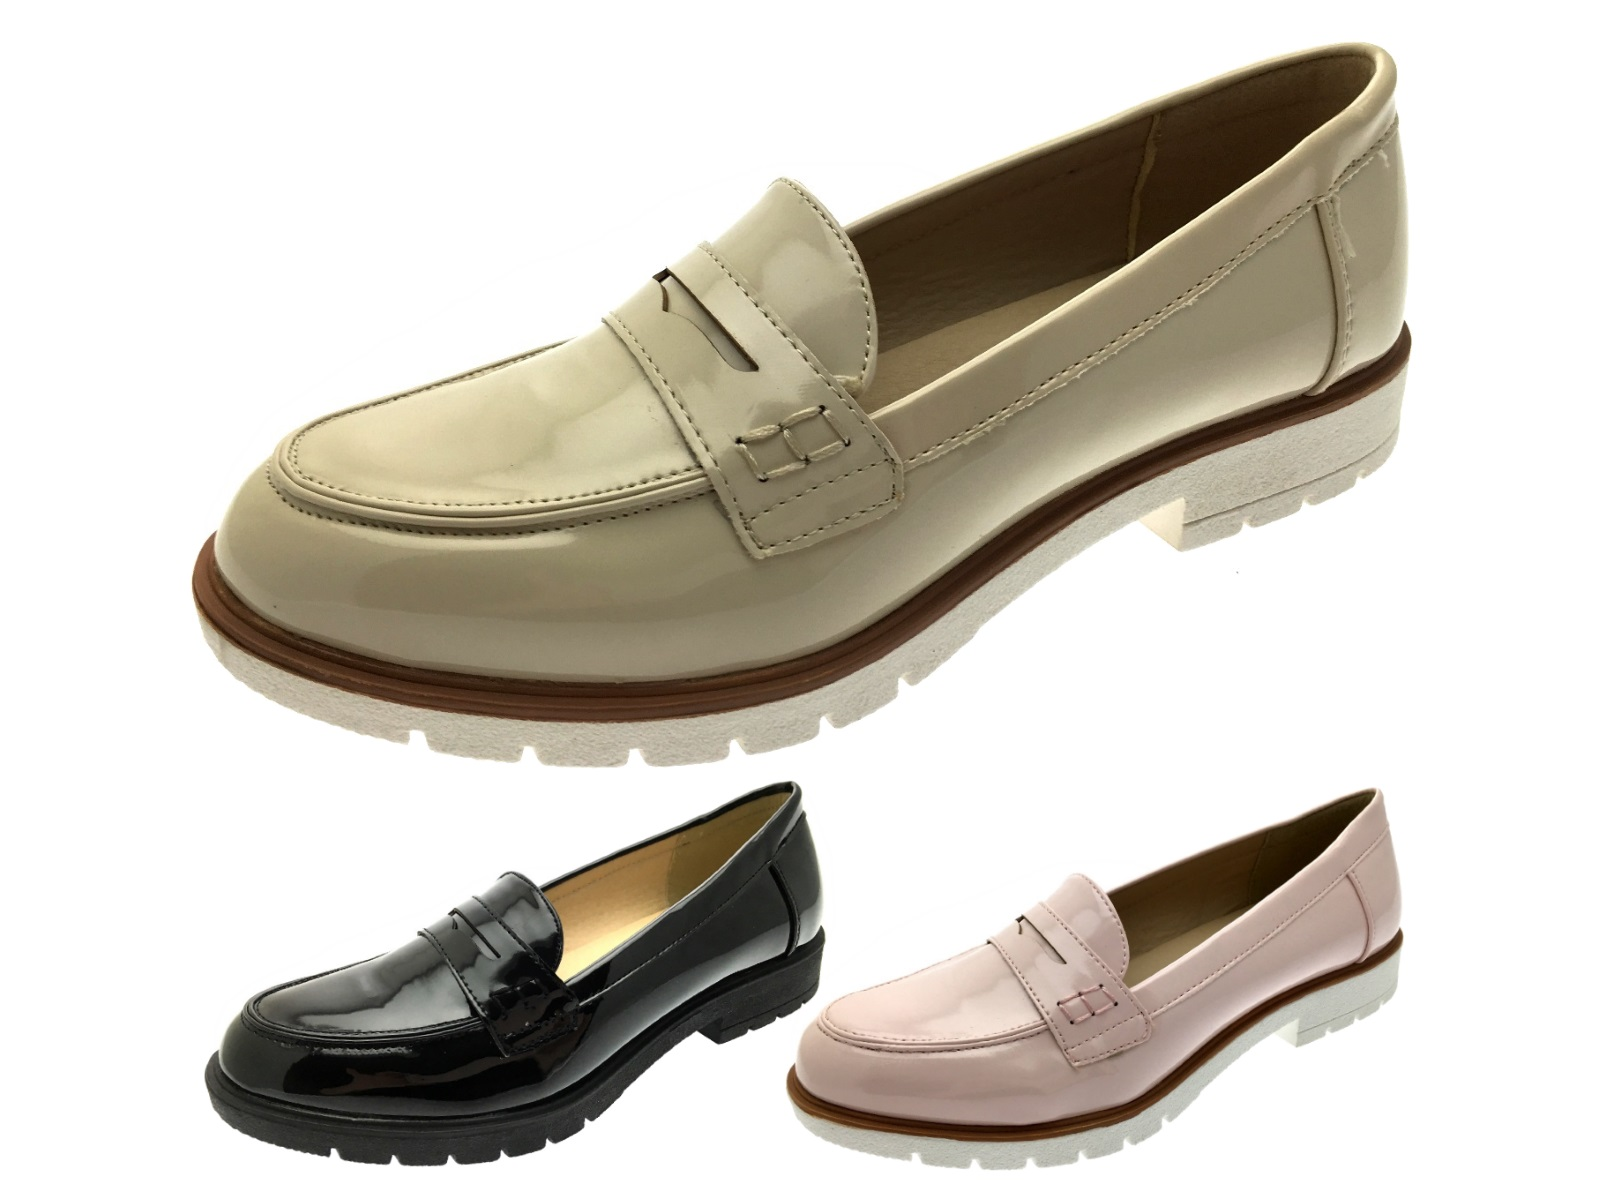 Explore womens shoes at M&S. Quality leather fashion footwear from comfortable heels to wedges, shoe boots, pumps, loafers, brogues & high sandals. Buy now.